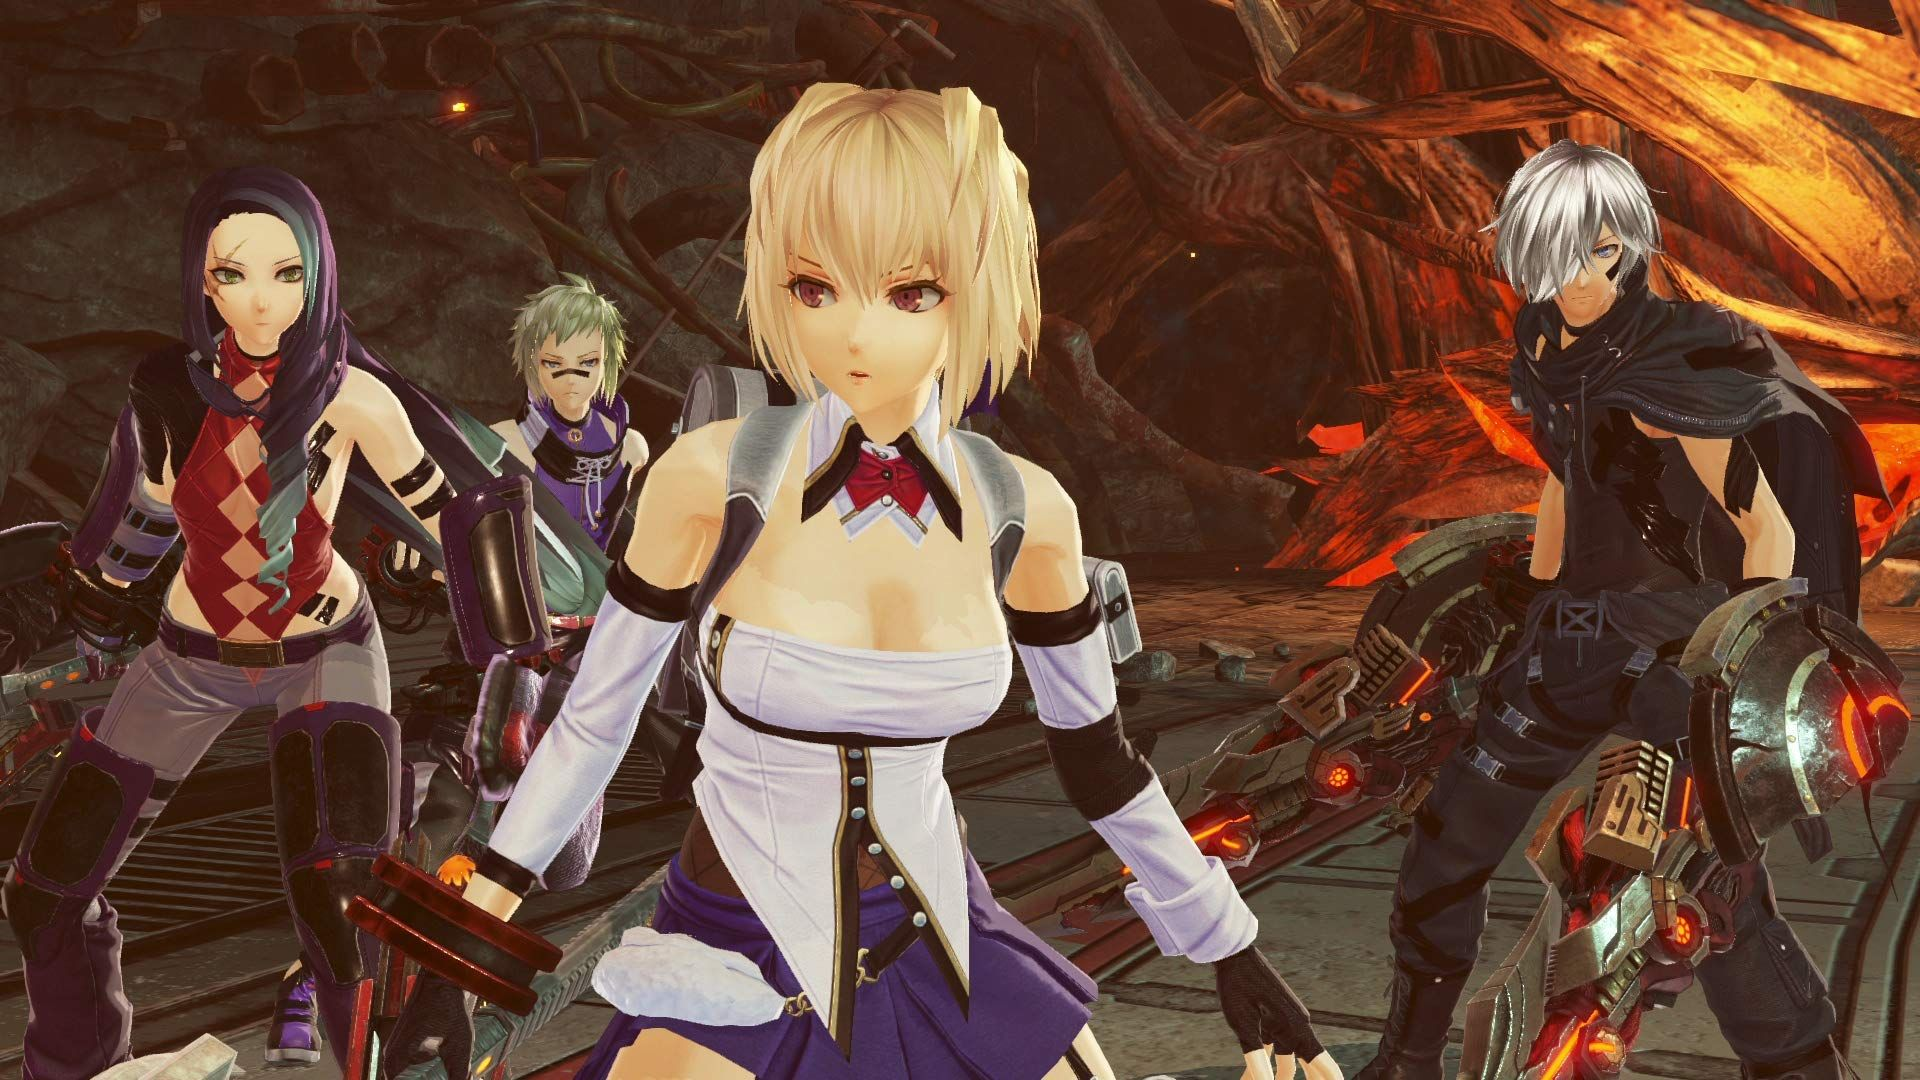 God Eater 3 Launches December 13 in Japan, Early 2019 for